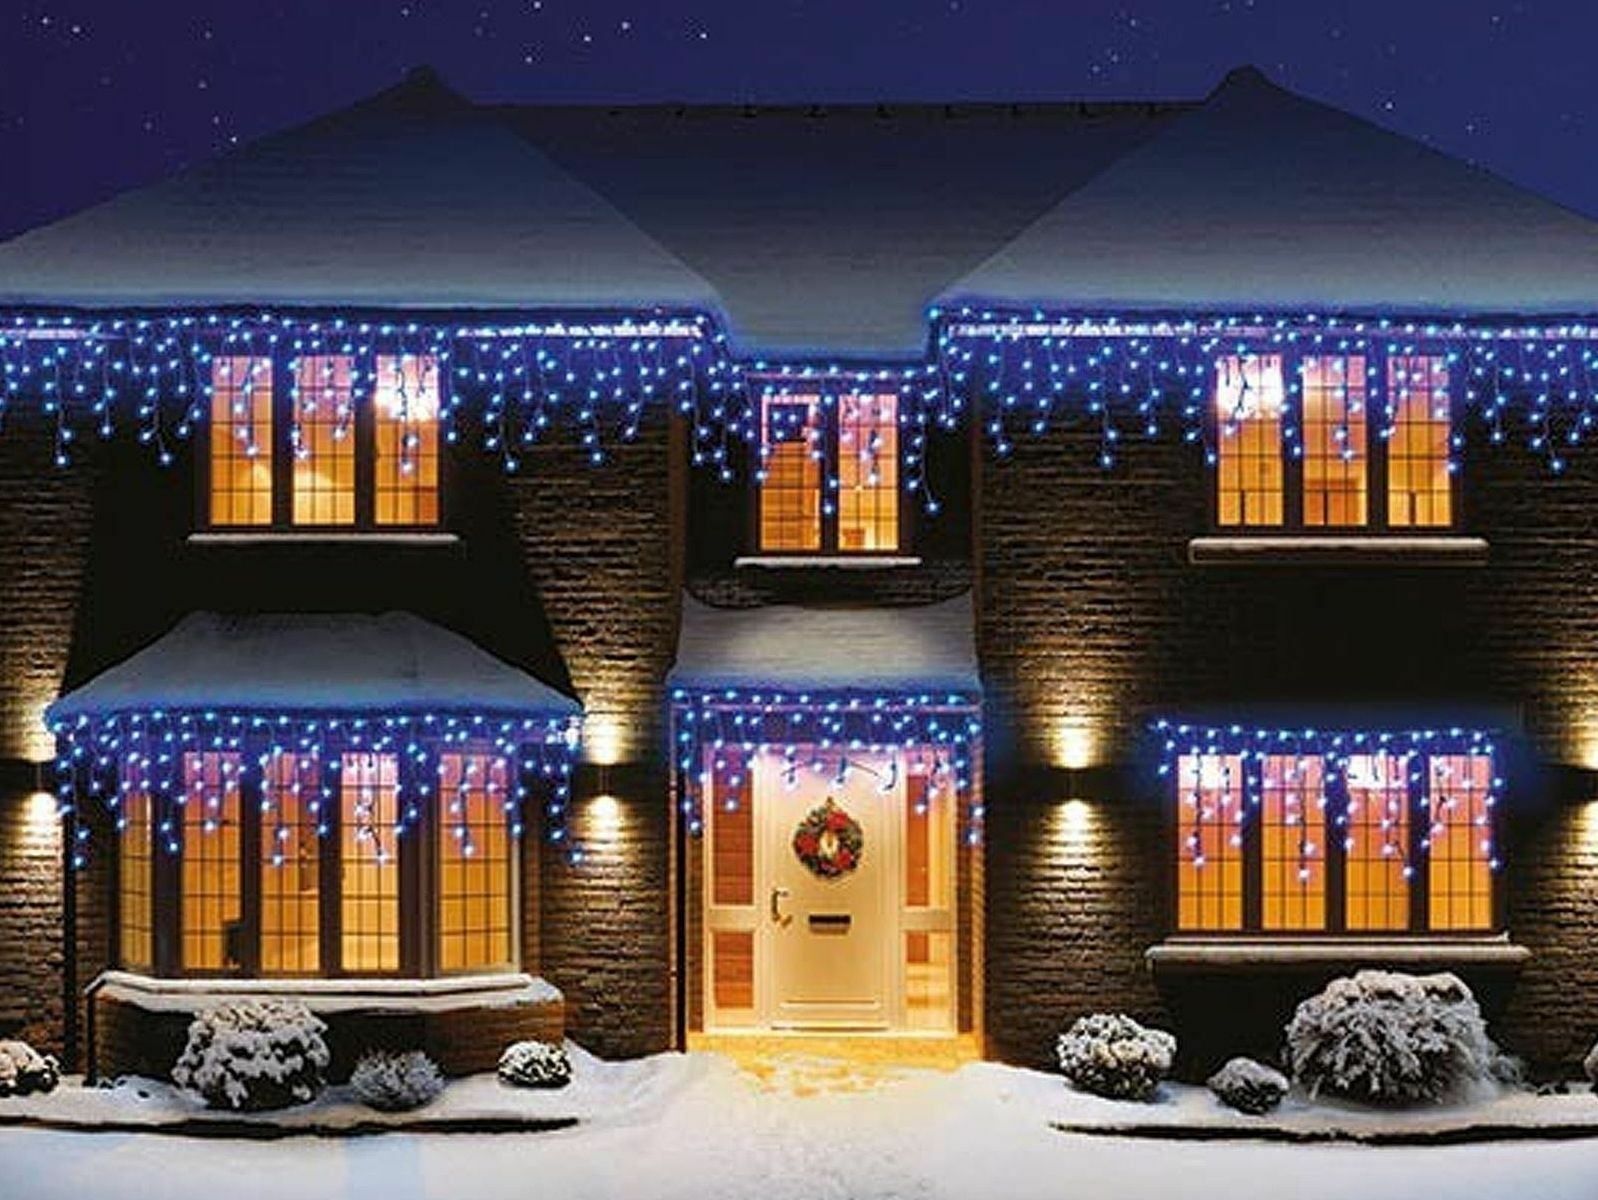 960 Christmas LED Snowing Icicle Lights Bright Weiß Blau Xmas  Indoor Outdoor